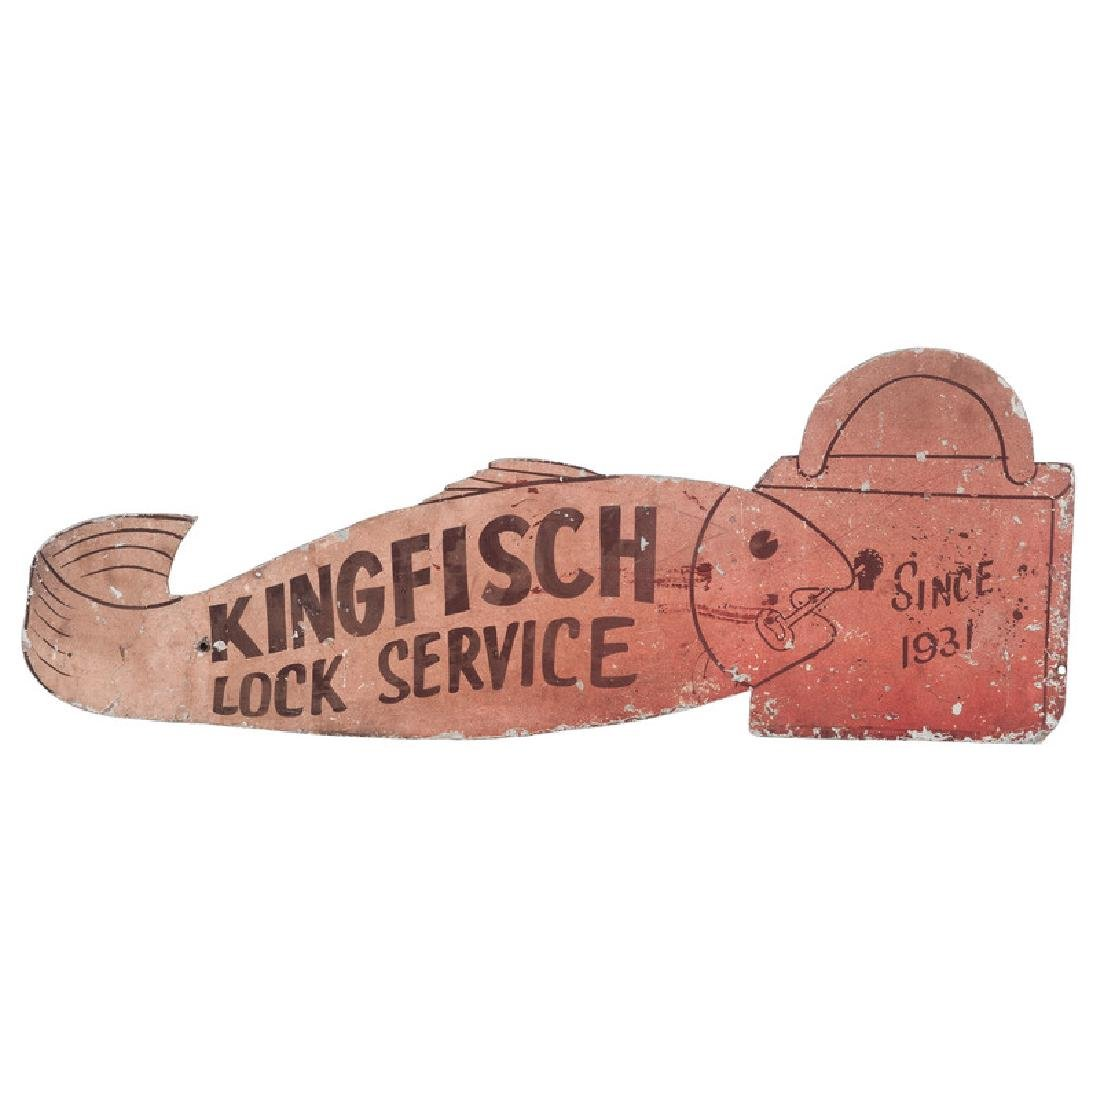 Locksmith's Metal Trade Sign